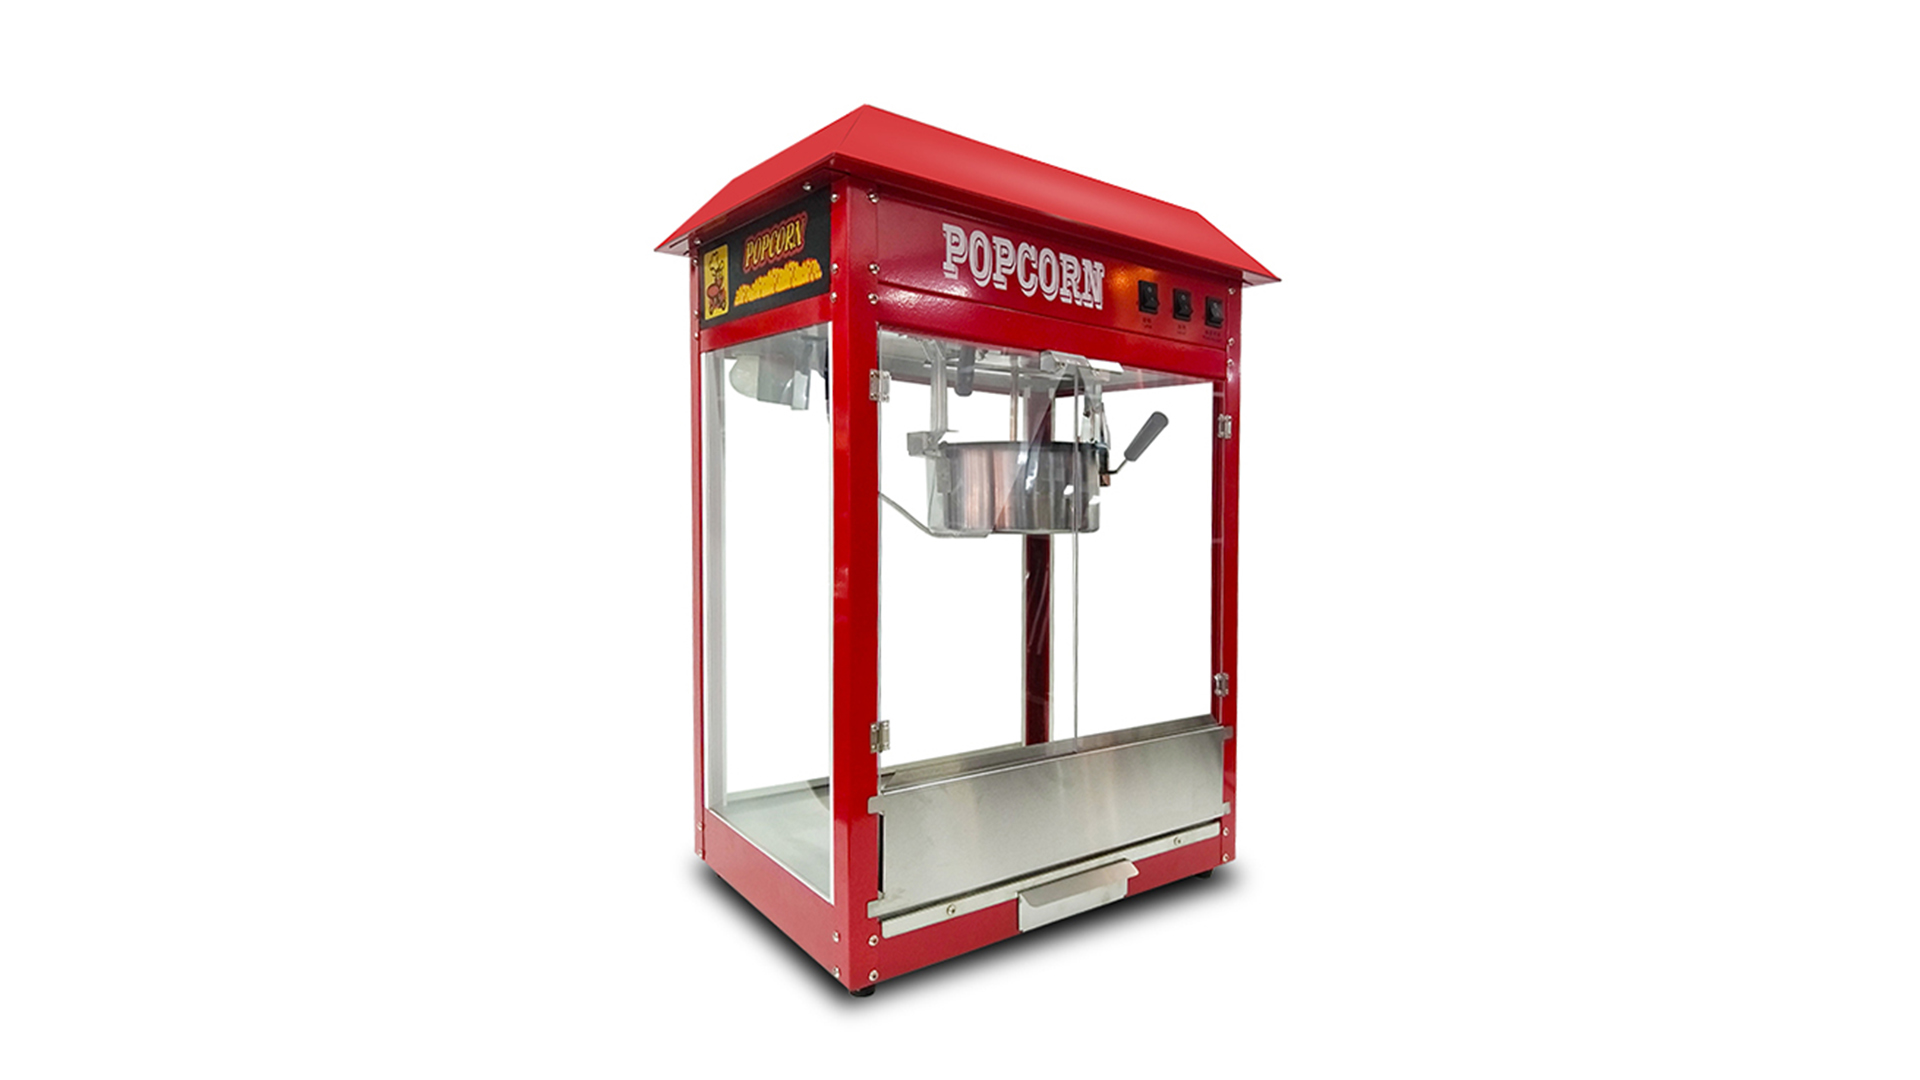 KTV Cinema Price Maker Industrial 16 Oz Automatic Vending Making 32 Oz Flavor Big Popcorn Machine Commercial